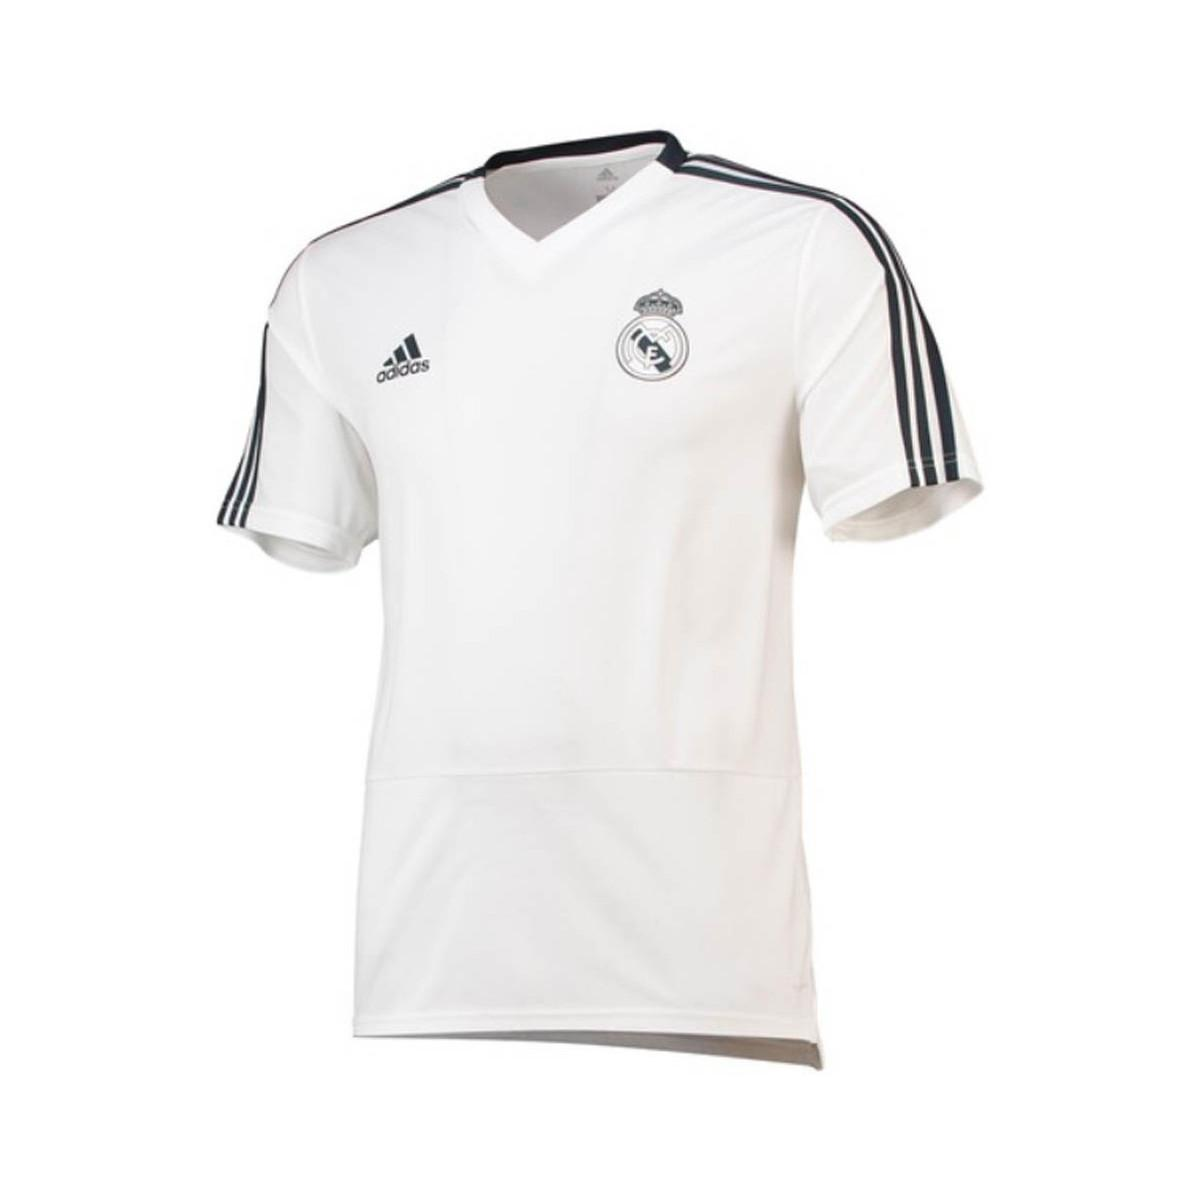 Adidas 2018-2019 Real Madrid Training Shirt Men s In White in White ... bcd5152c4